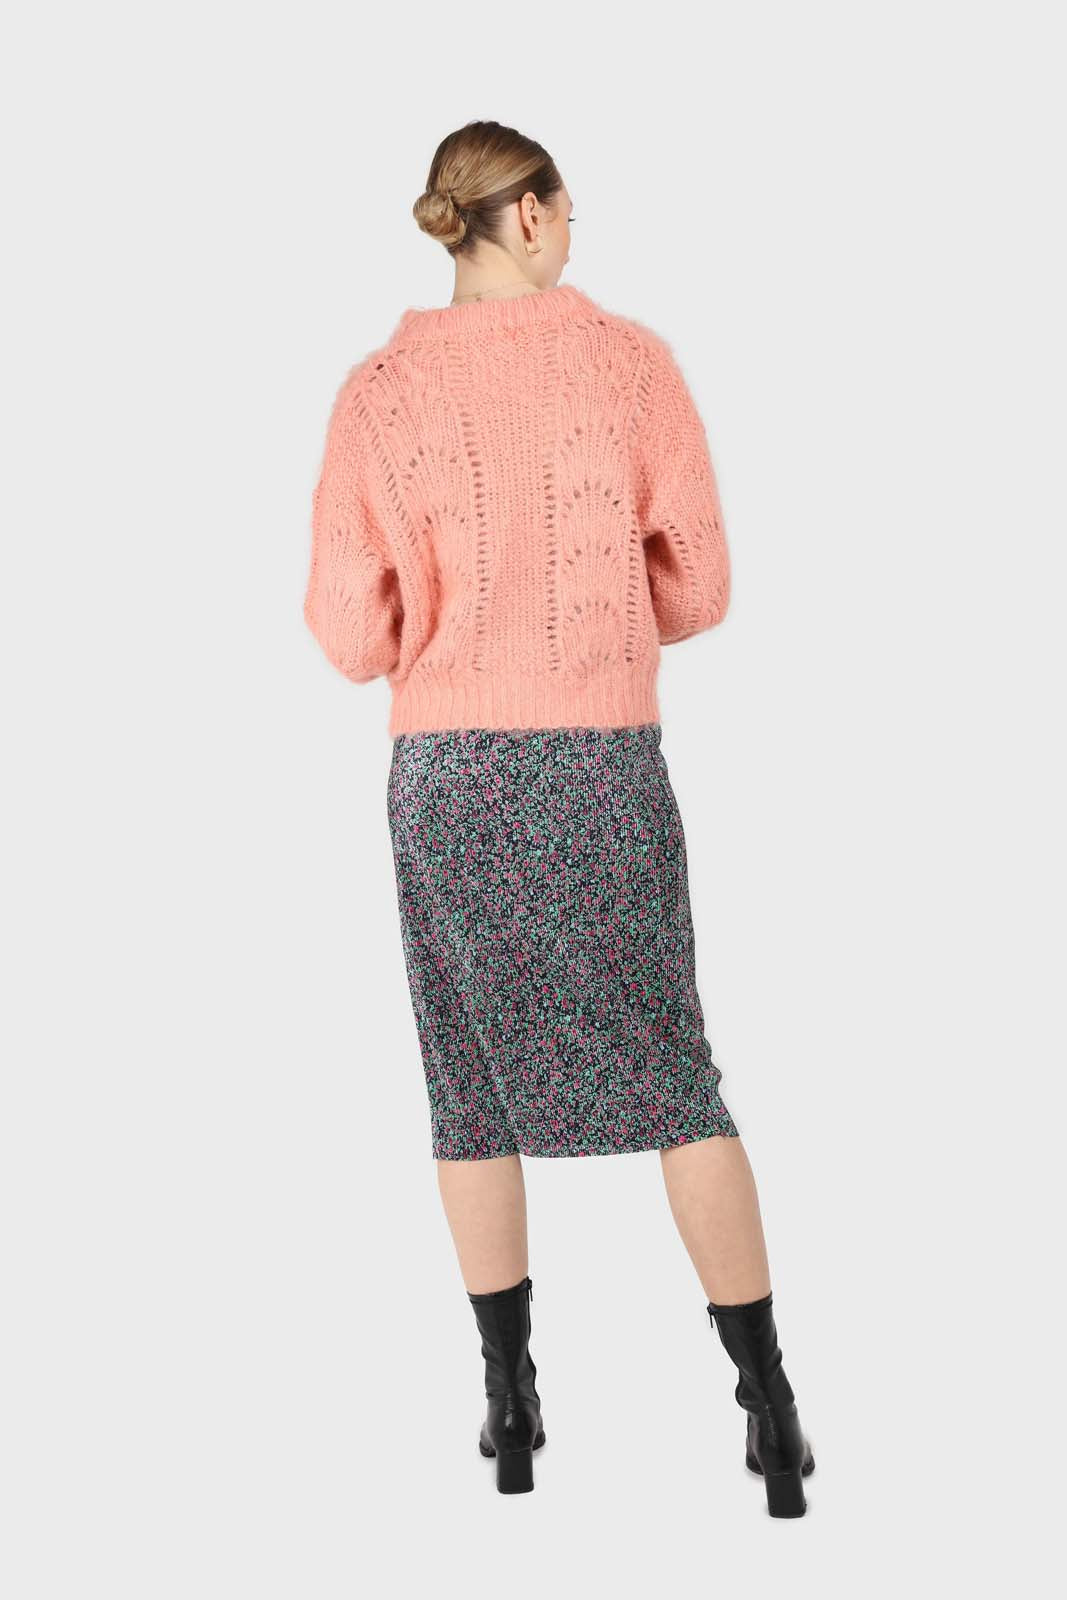 Pink lace knit fuzzy jumper6